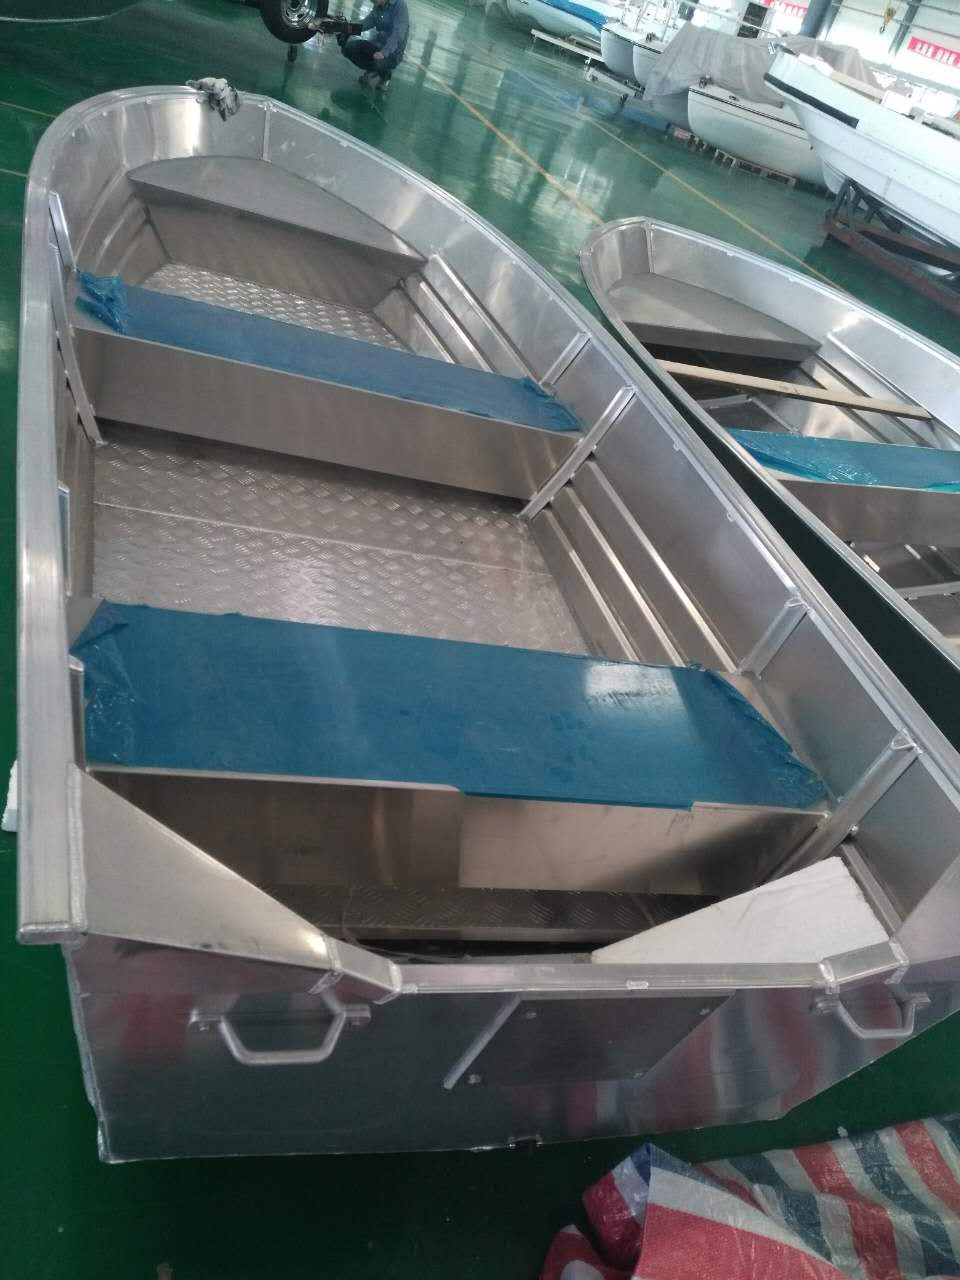 11ft 20 Ft Sword Welded Aluminum Fishing Boat Centre Console With Bench Seat Manufacturer View 11ft 20 Ft Aluminum Fishing Boat Centre Console Small Cabin Aluminum Boat Sanj Product Details From Hubei Sanjiang Boats